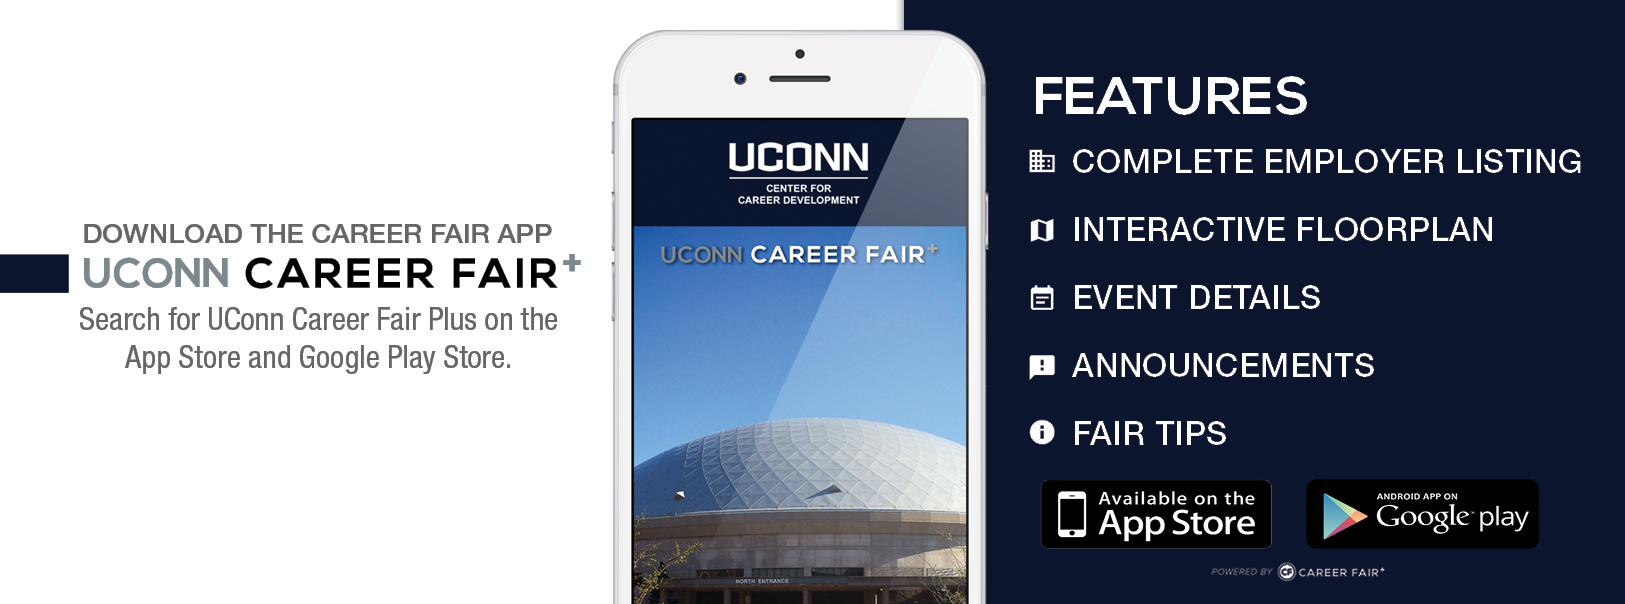 2017 spring career fair uconn center for career development